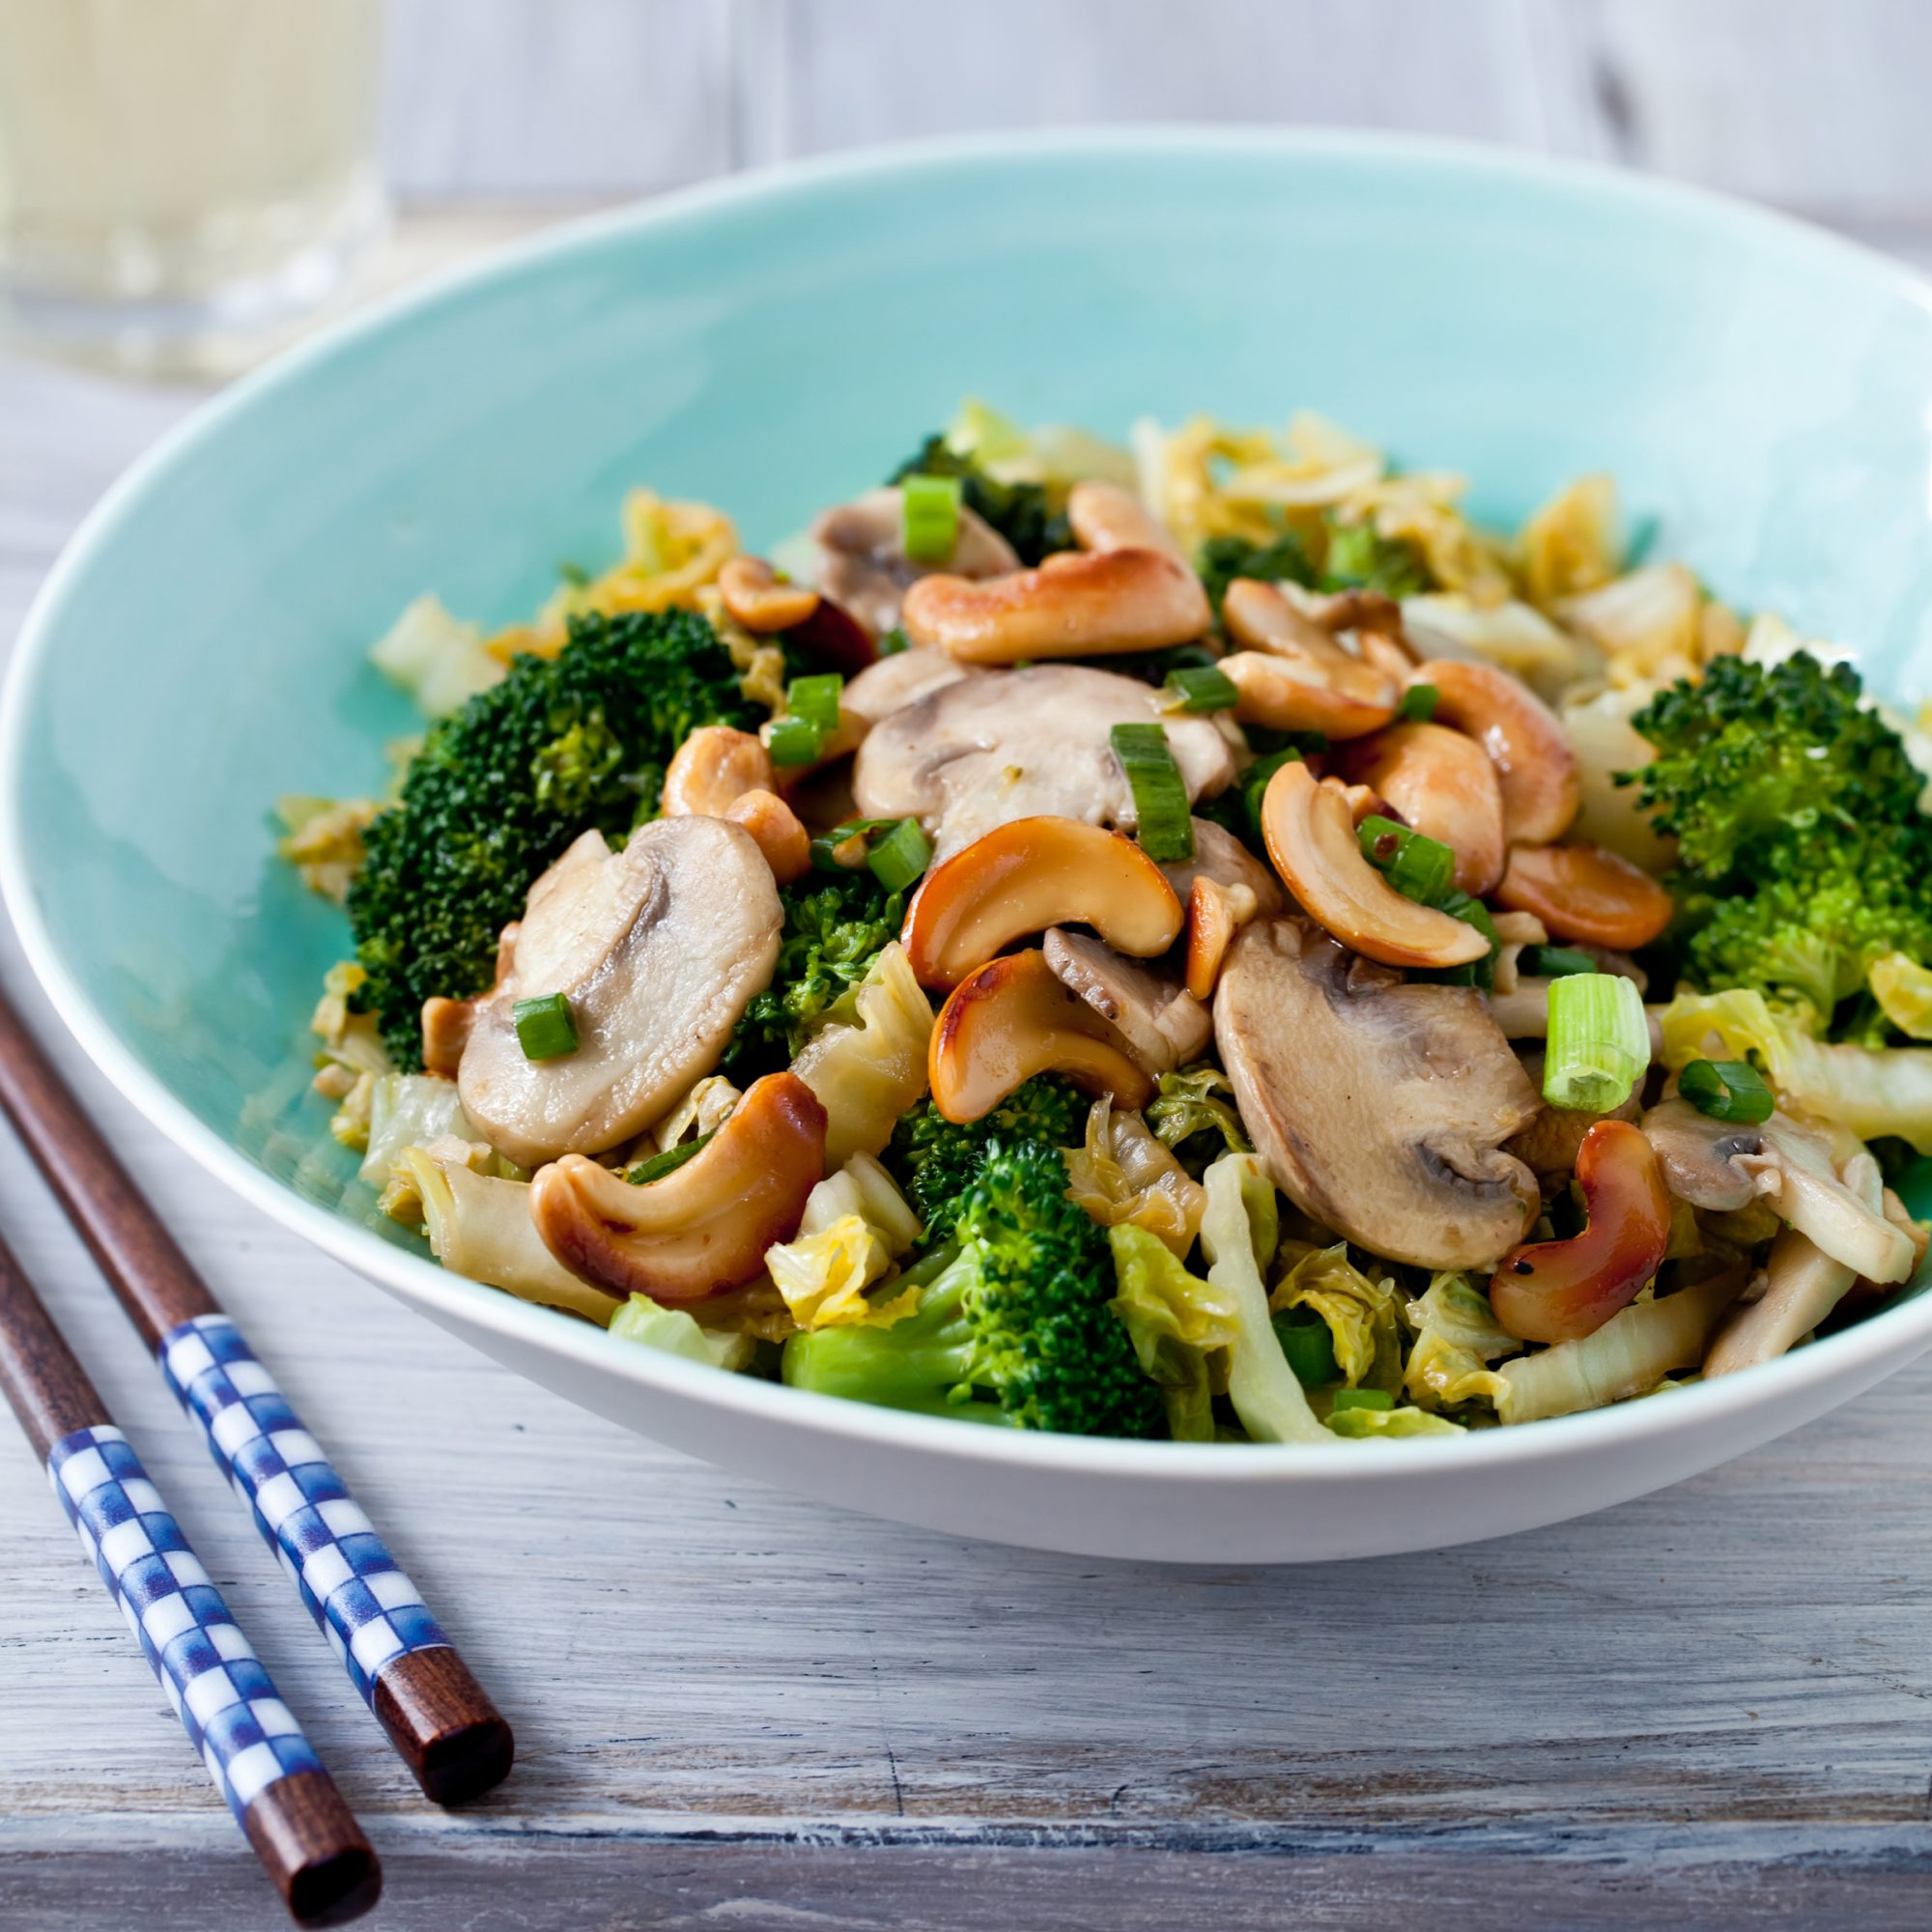 Stir fried vegetables with toasted cashews recipe quick from stir fried vegetables with toasted cashews recipe quick from scratch vegetable main dishes food wine forumfinder Choice Image